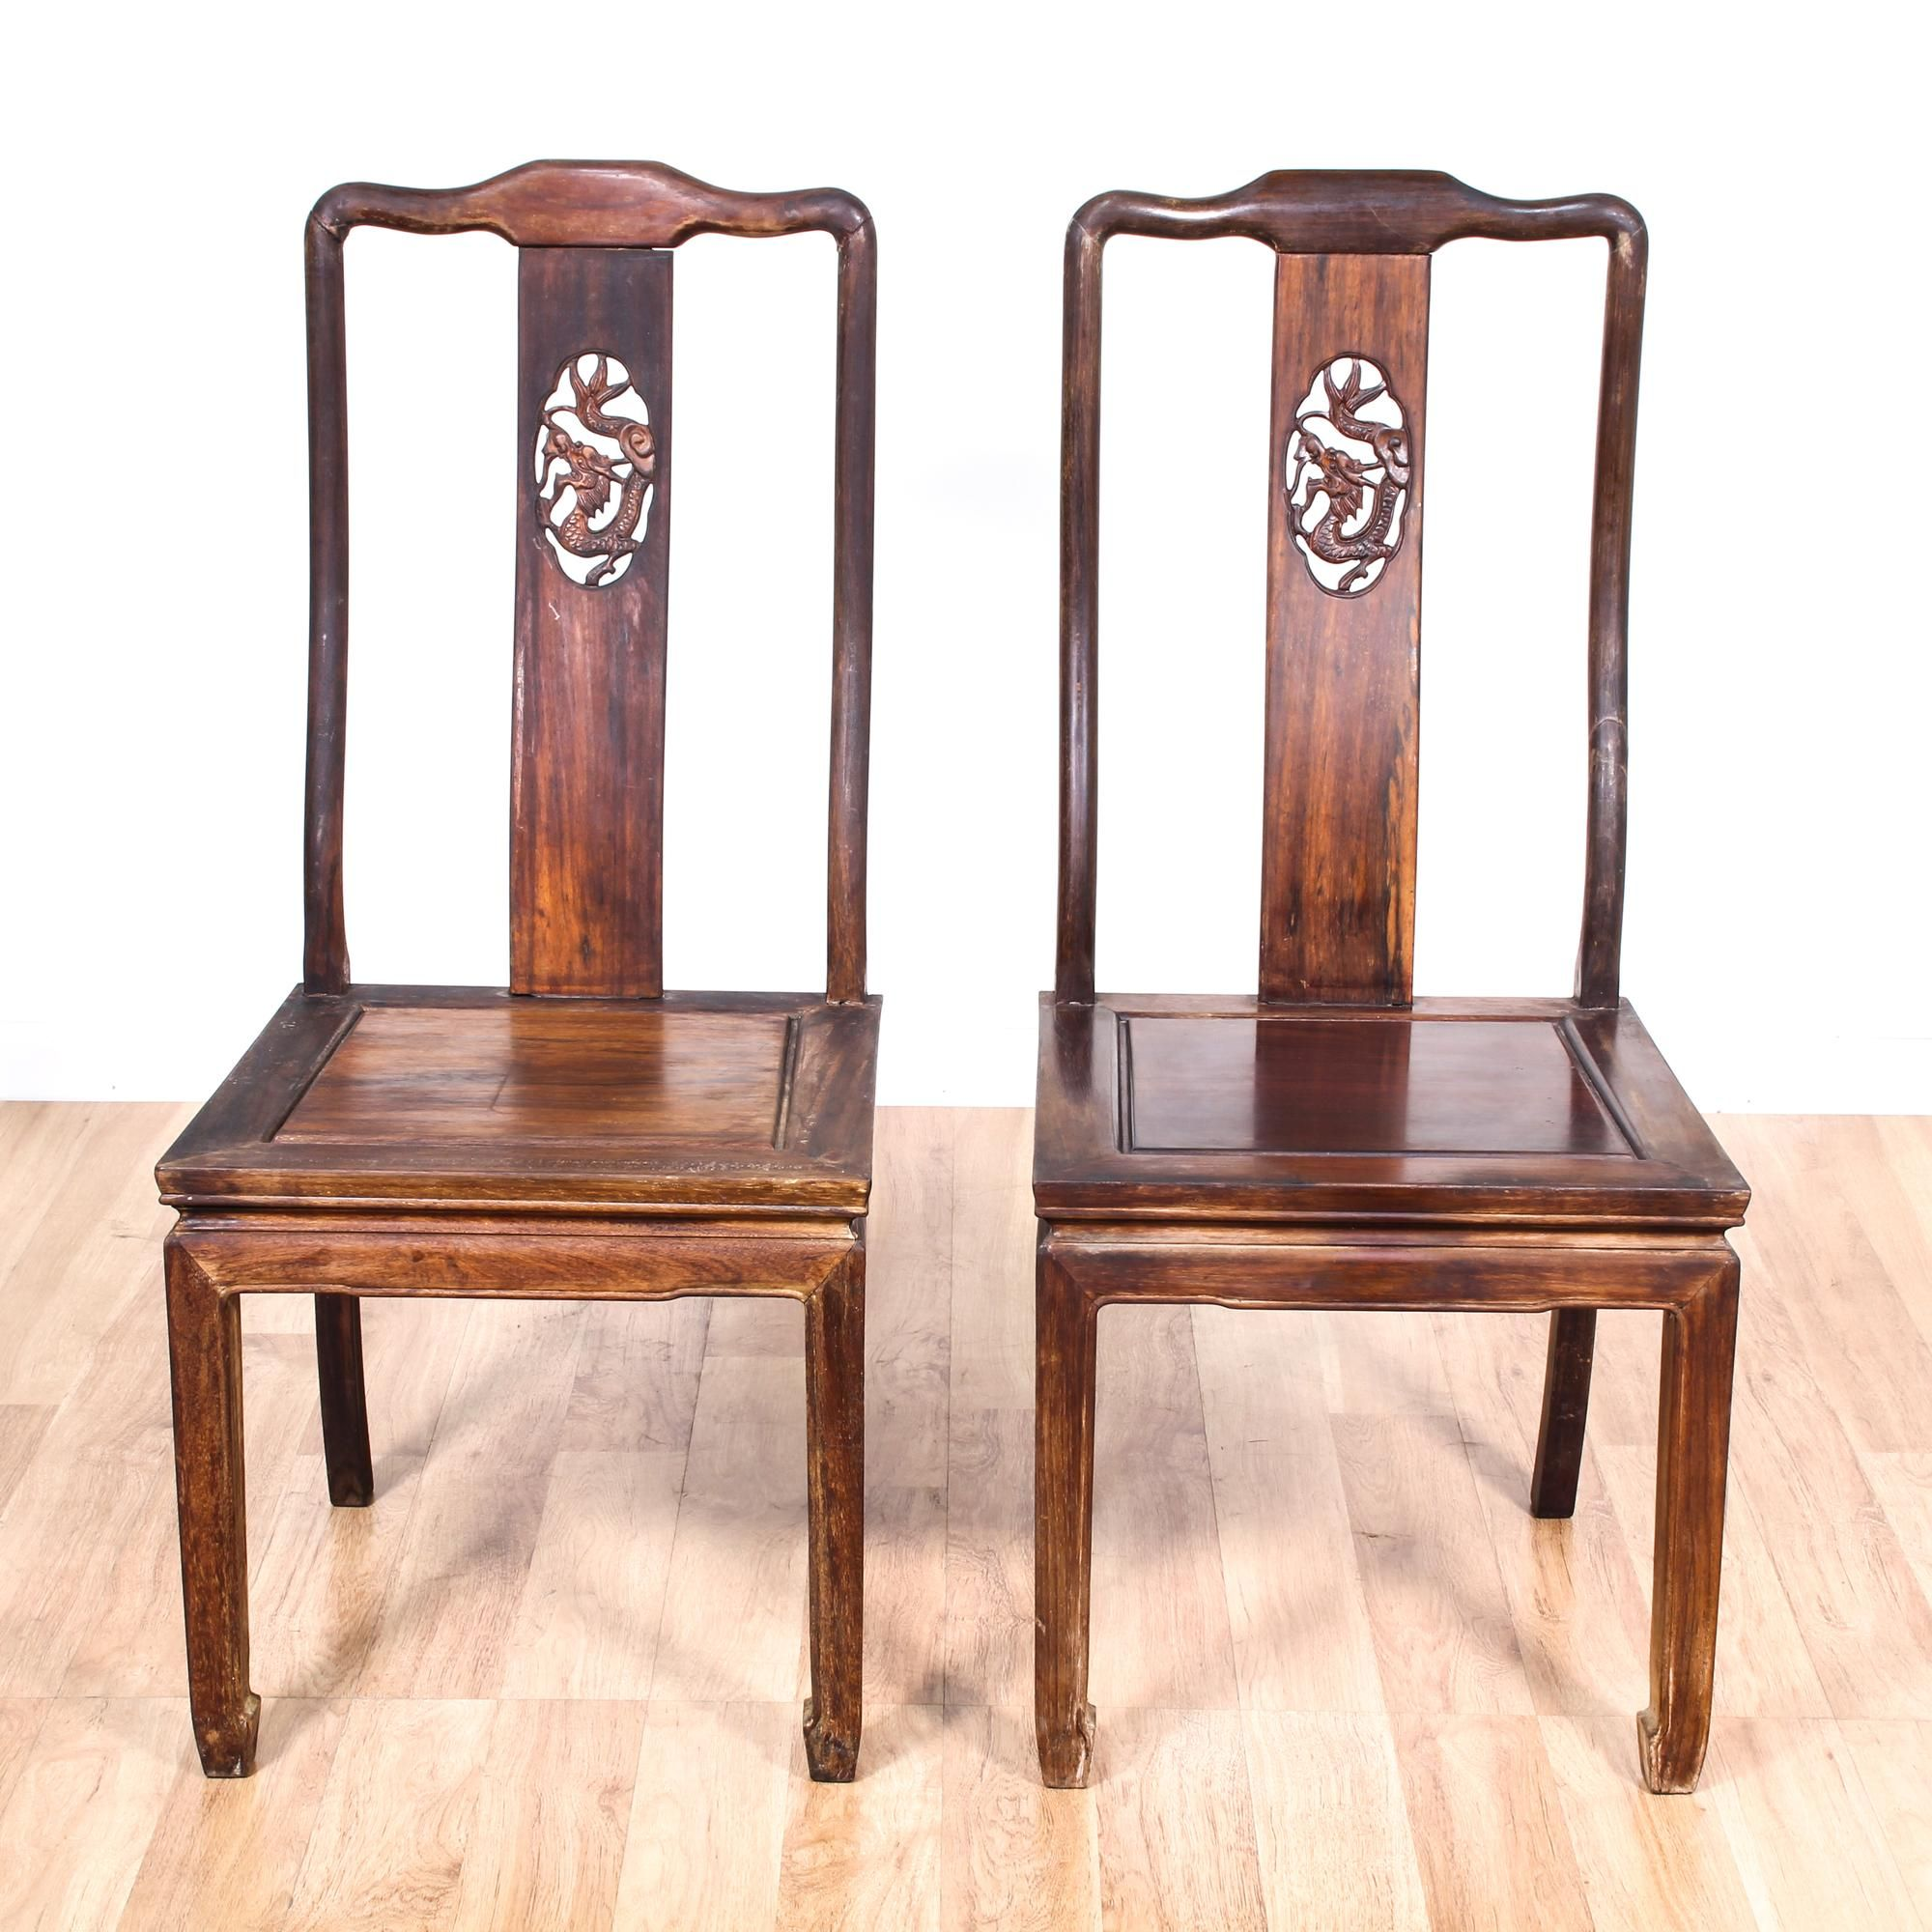 These Antique Chinese Dining Chairs Are Featured In A Solid